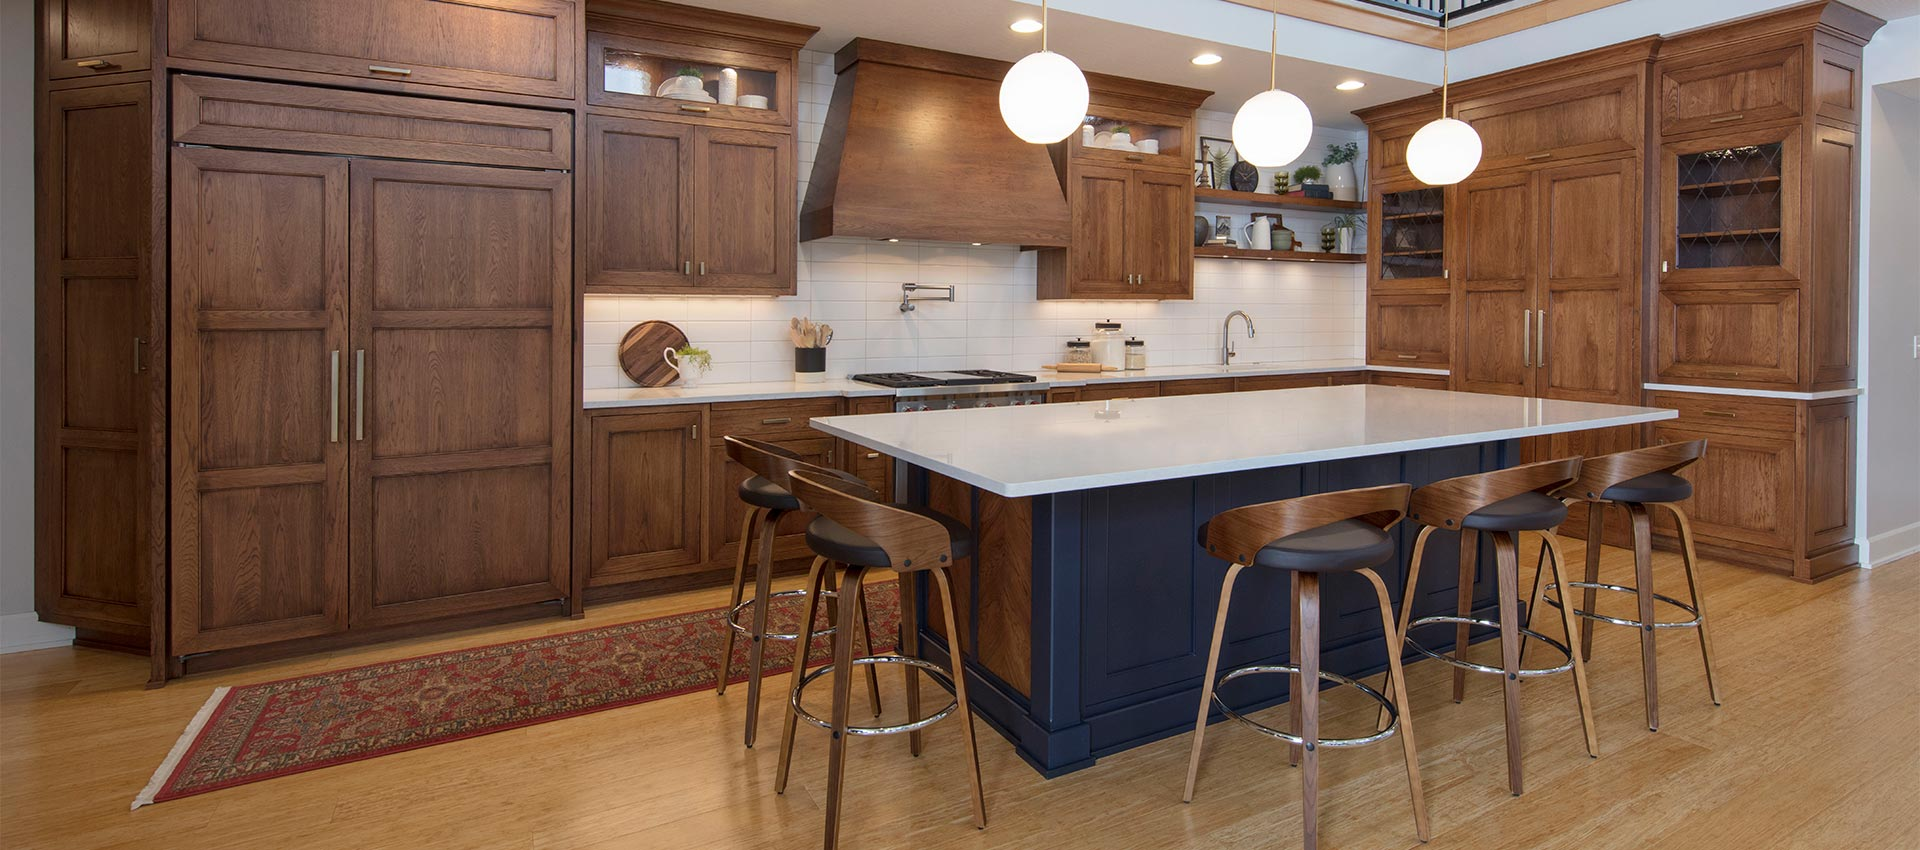 schlabachwooddesign amish kitchen cabinets Made in the USA Hardwood Cabinets